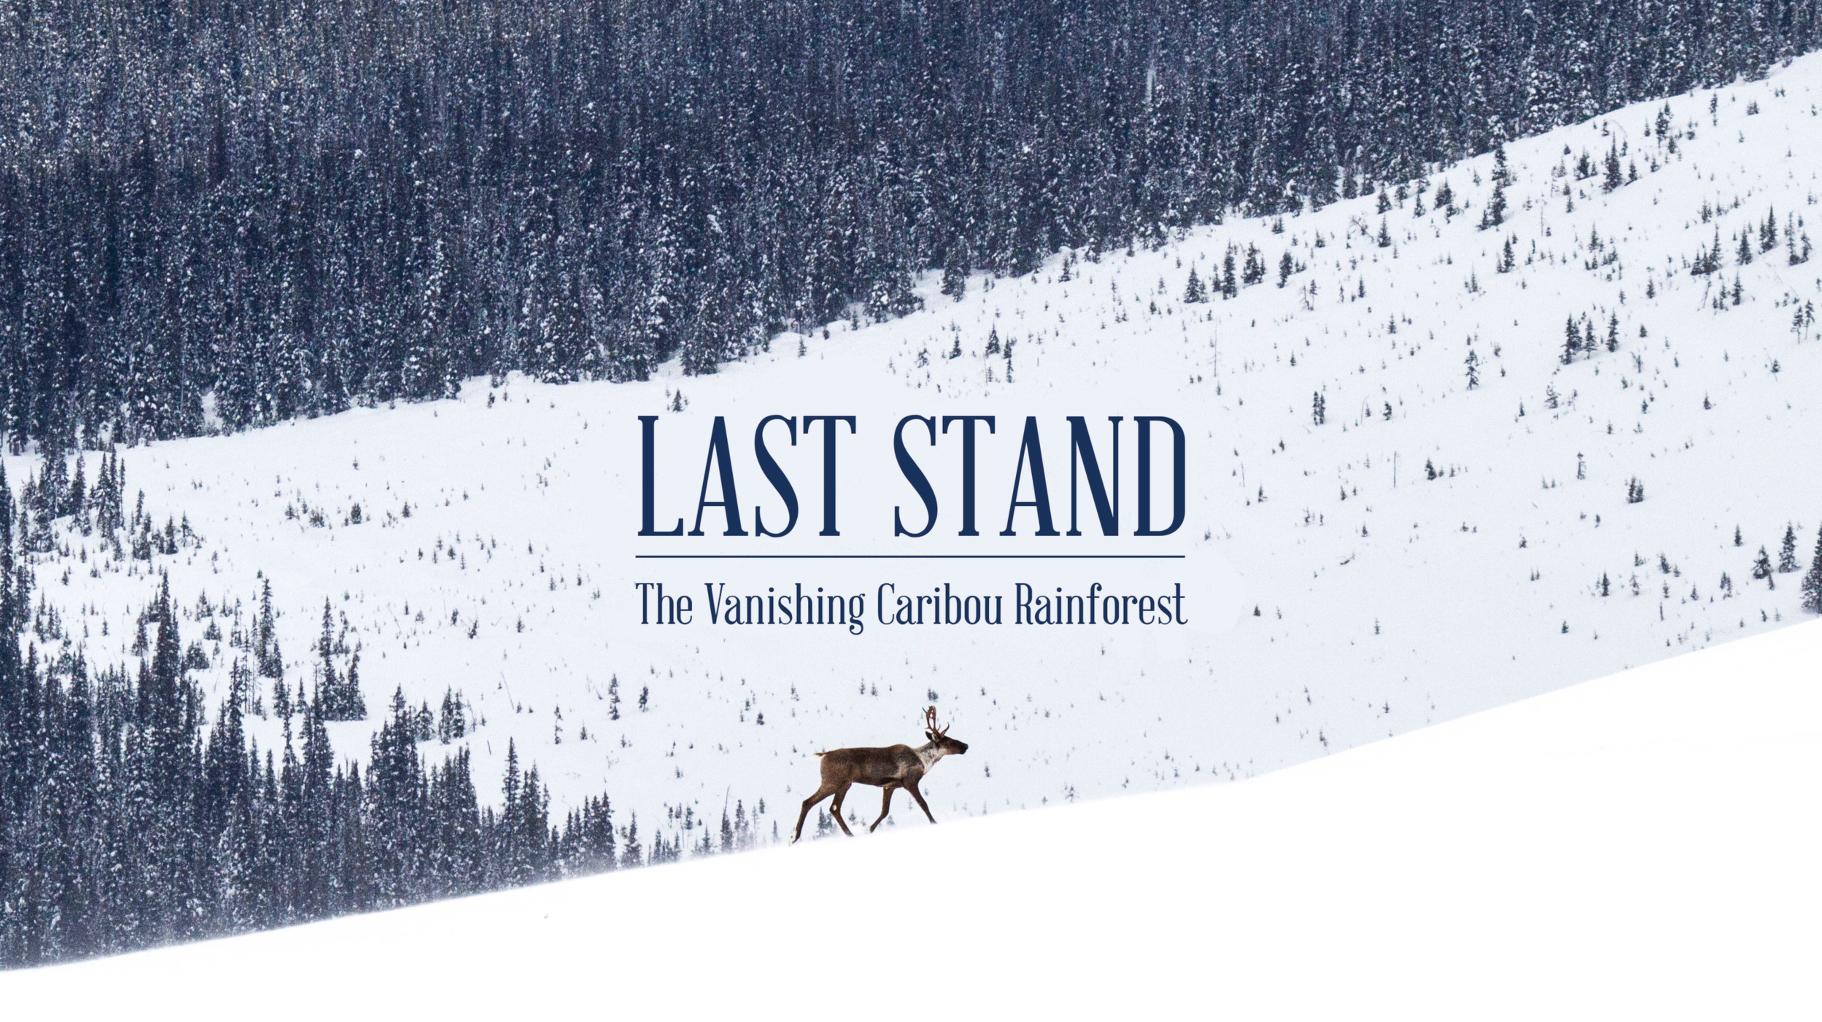 FULL FILM NOW AVAILABLE ON DEMAND - Last Stand: The Vanishing Caribou Rainforest